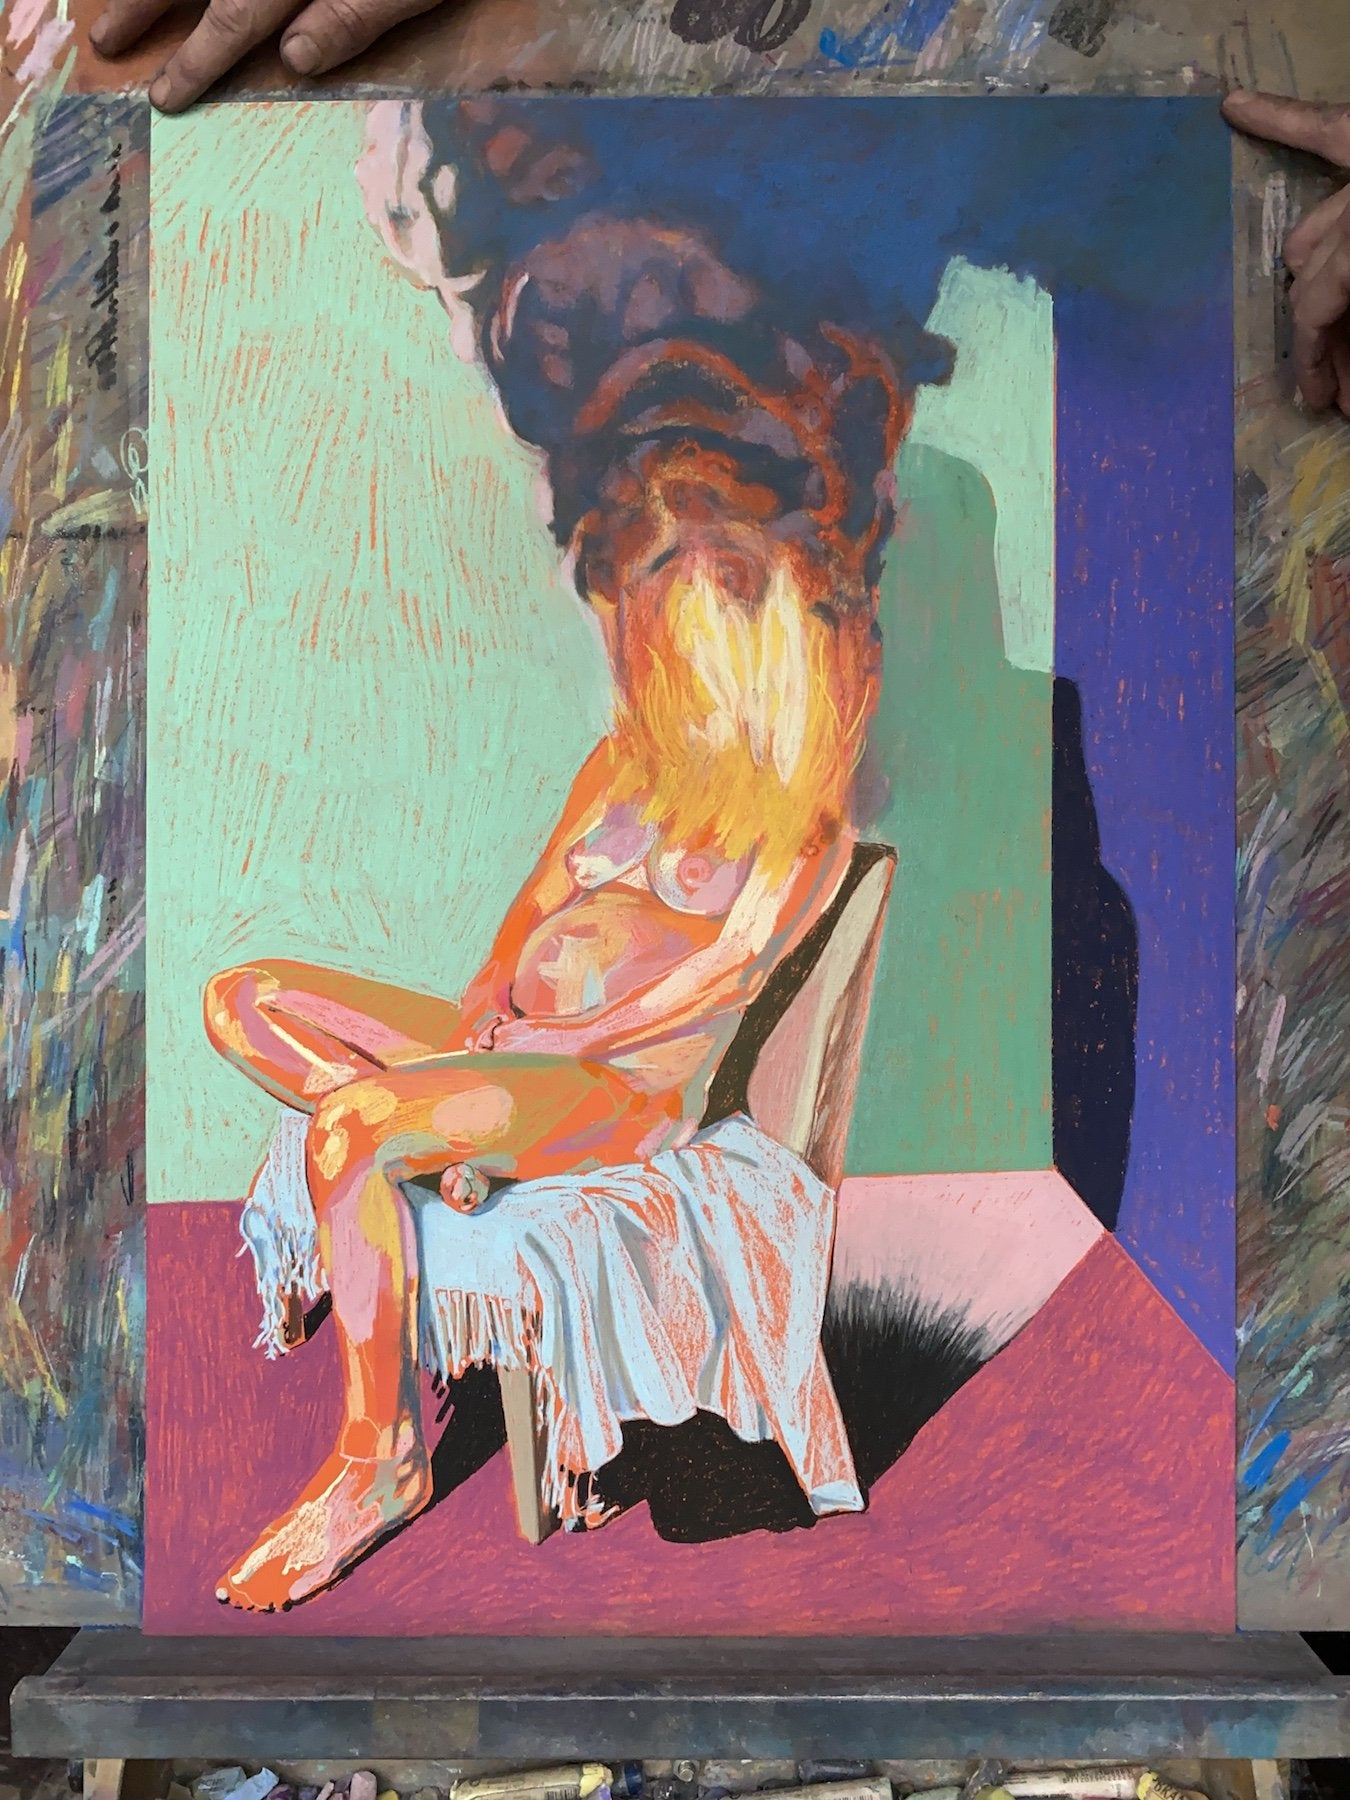 Nude on fire with pink ground & turquoise wall